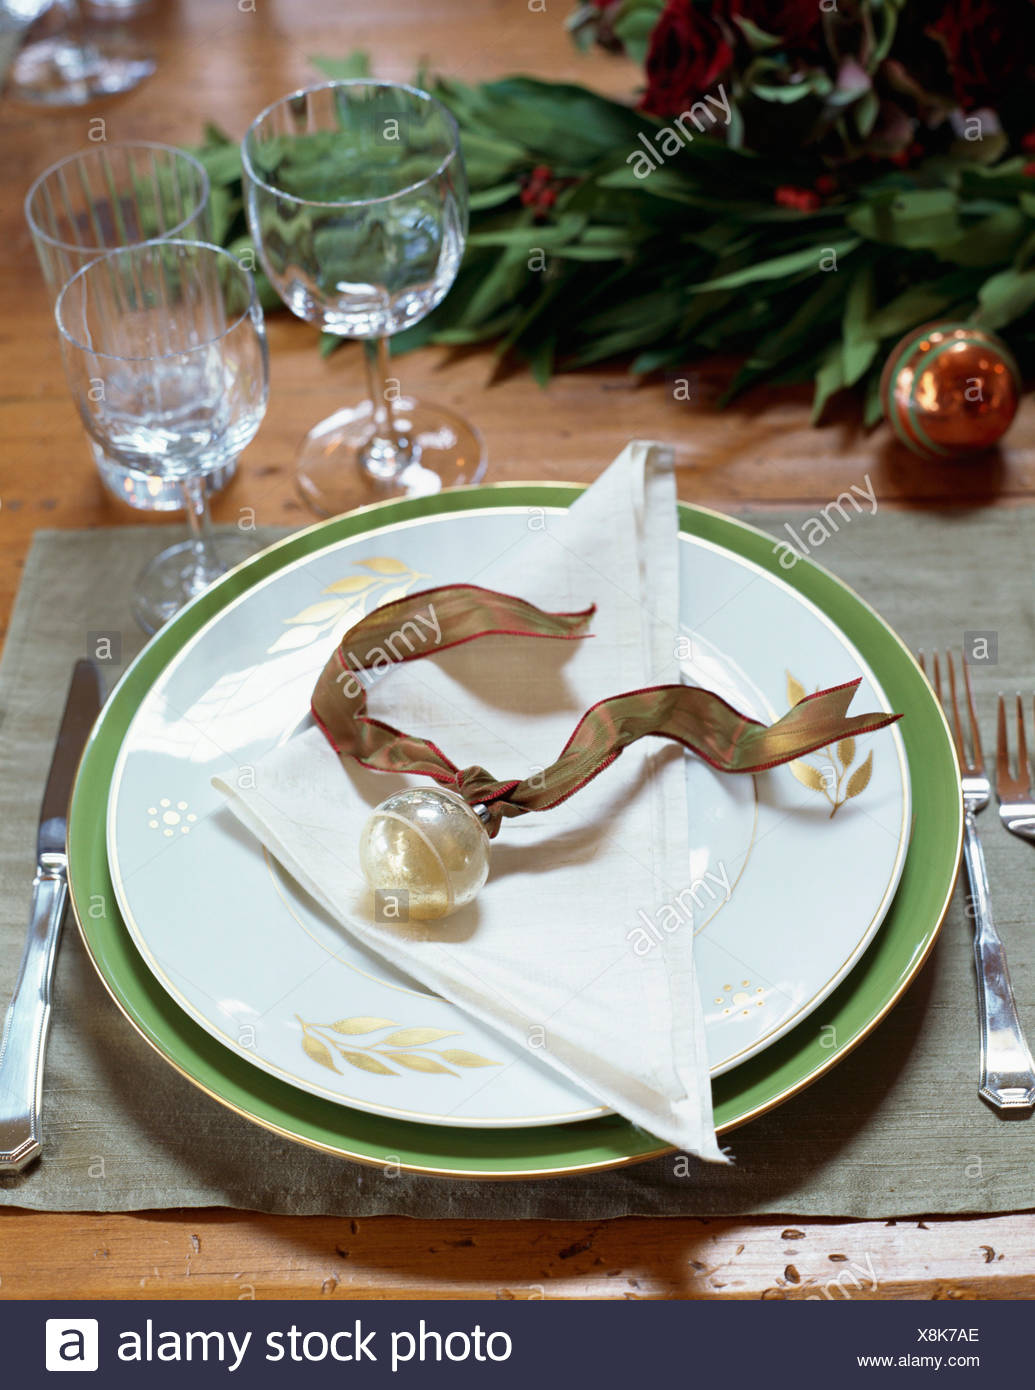 Christmas Place Setting With Bauble And Ribbon